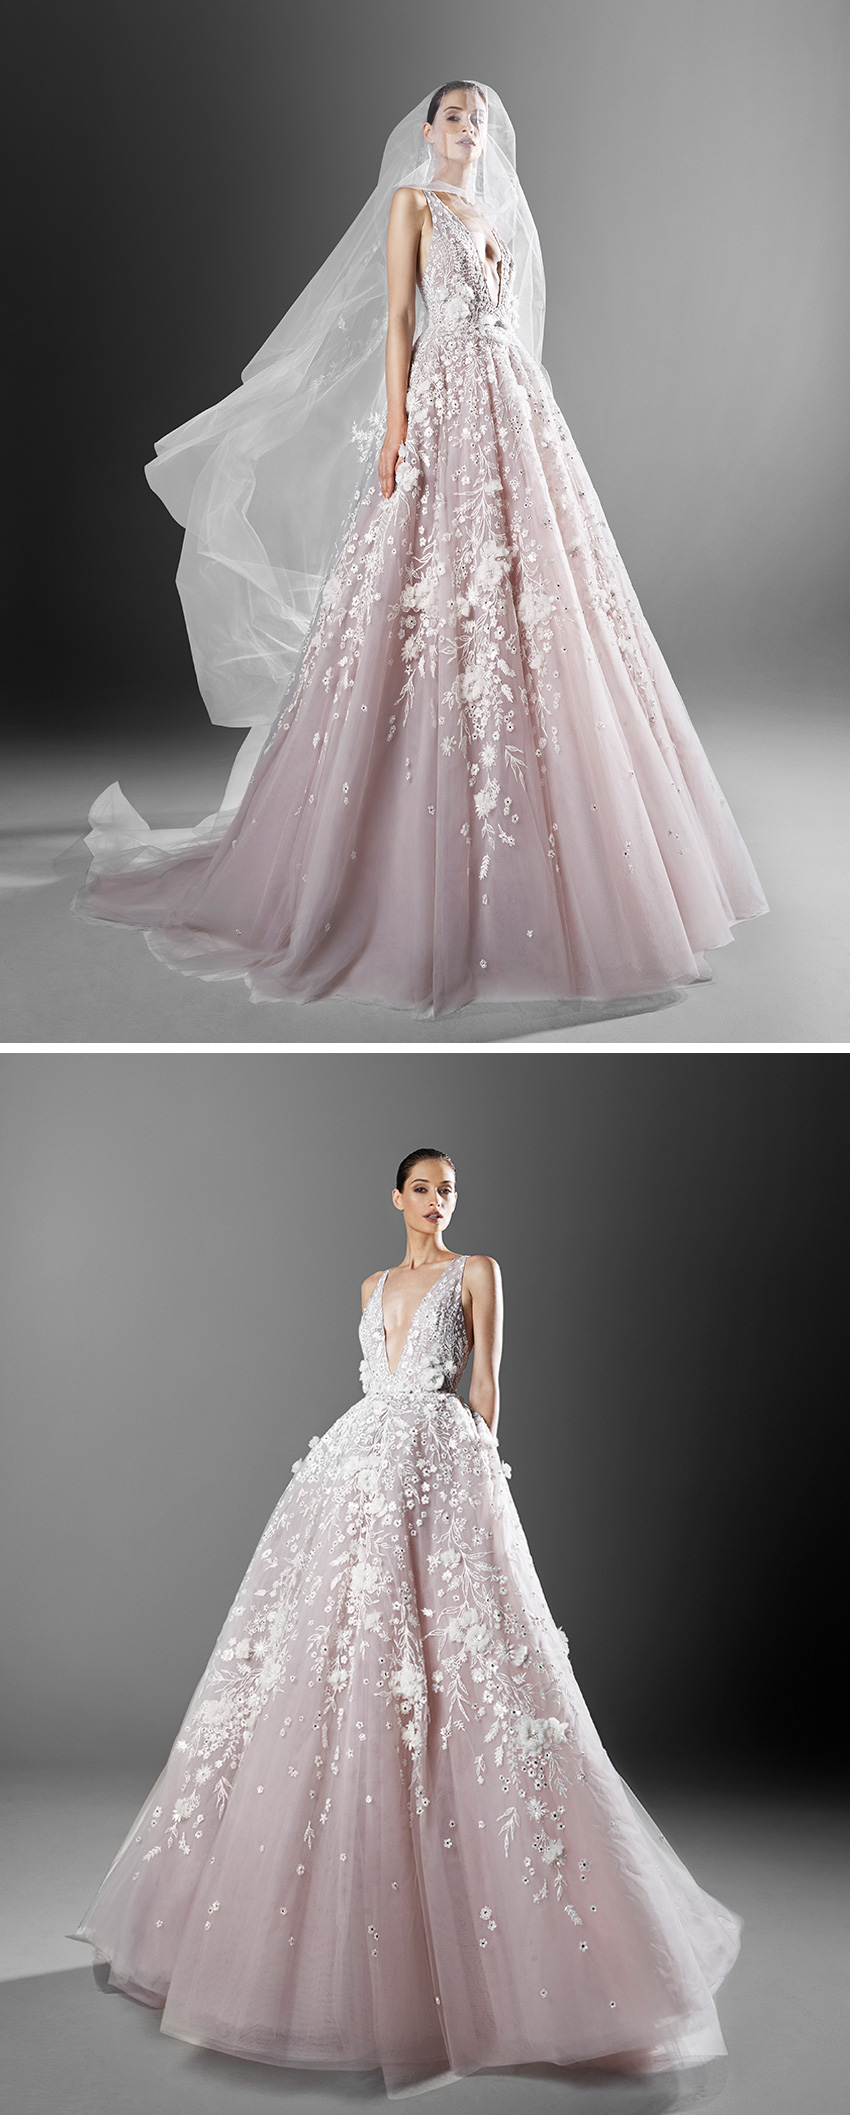 Zuhair Murad Spring 2021 bridal collection includes a colour palette of whites, green mints and soft pinks as featured in Perfect Wedding Magazine